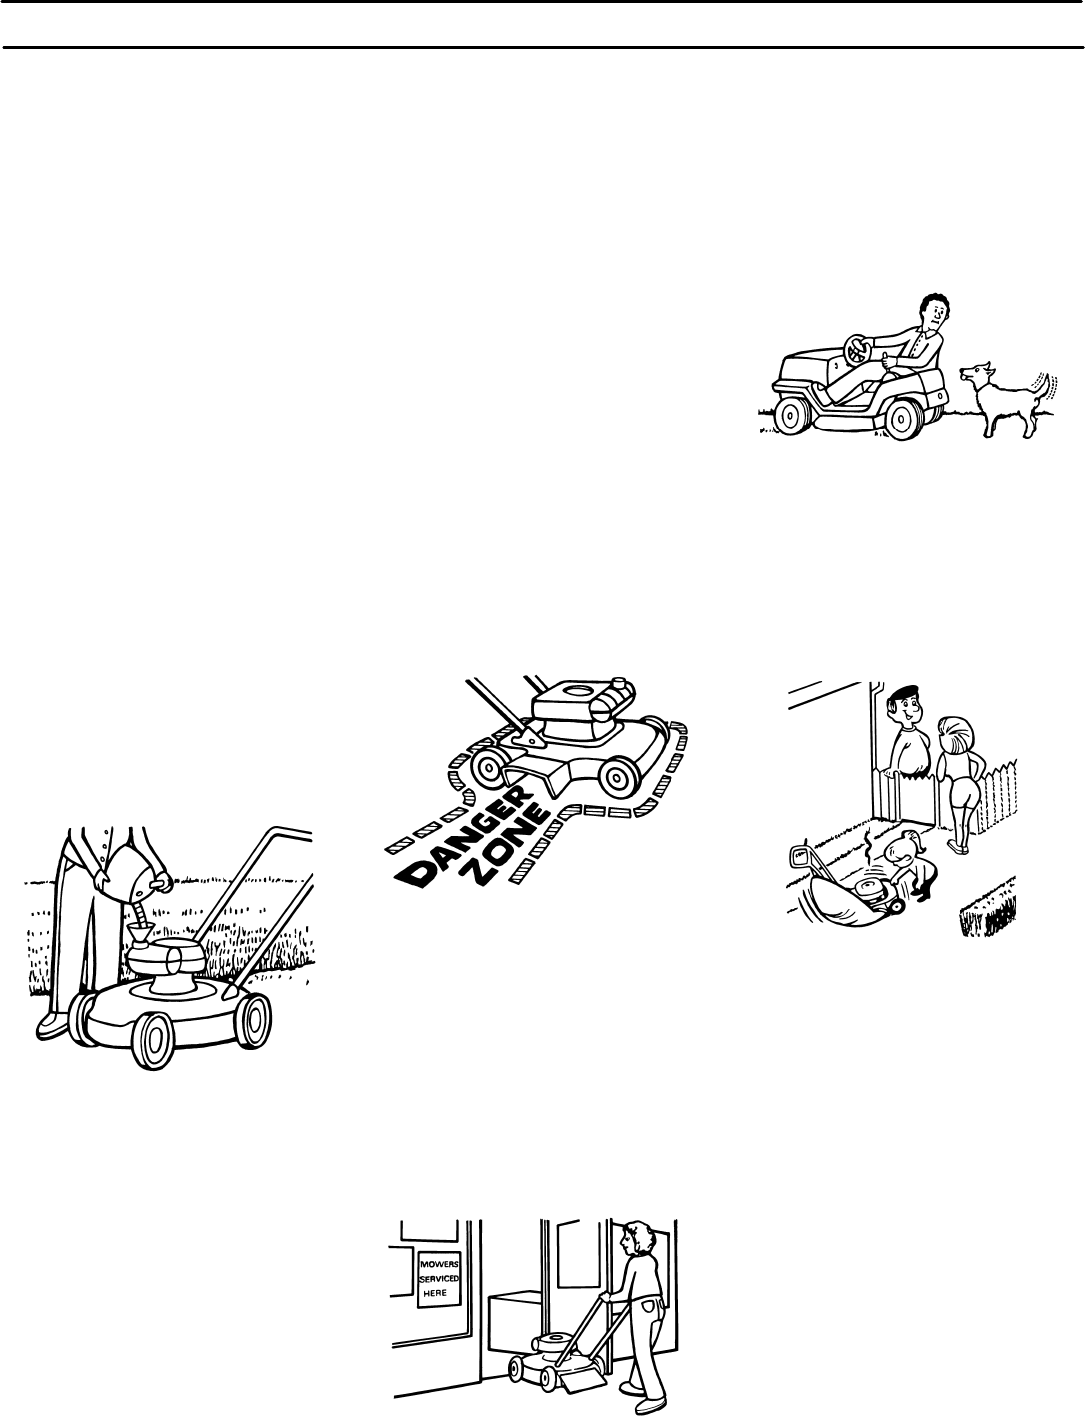 Page 6 of Murray Lawn Mower 425016x48A User Guide